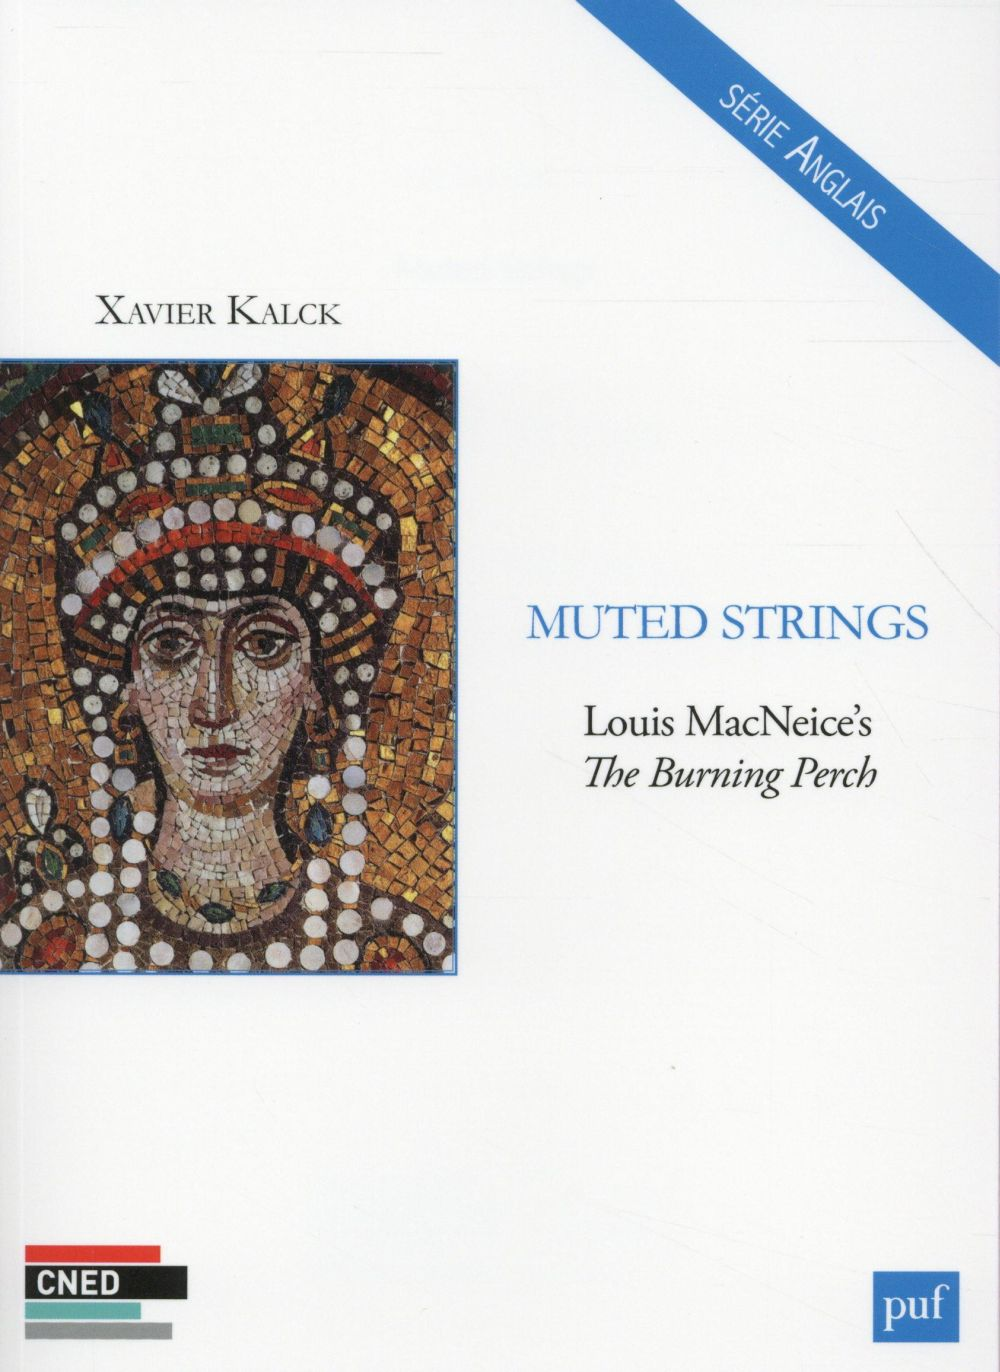 Muted strings ; Louis MacNeice's, the burning perch